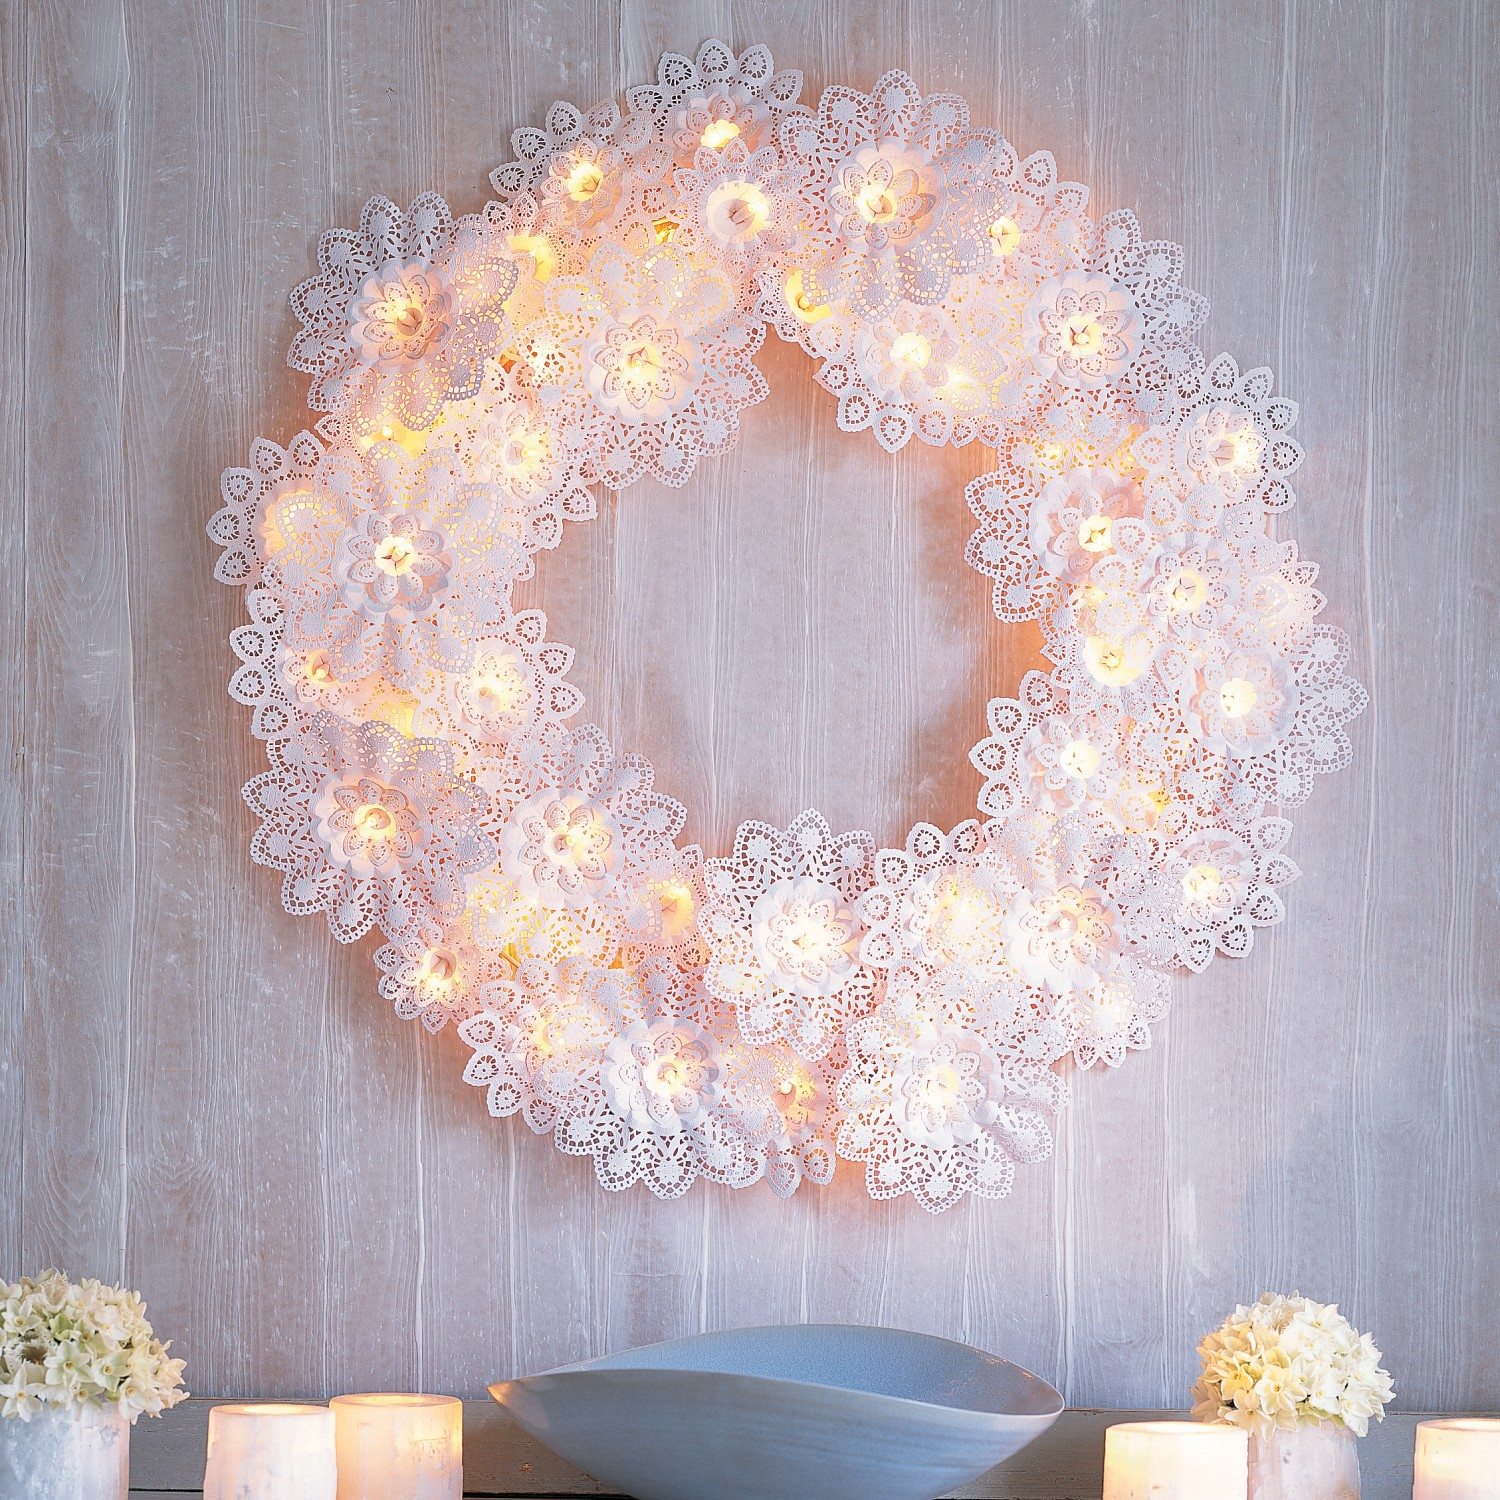 Christmas Craft Ideas With Paper Doilies : This season try new unique ways to decorate with